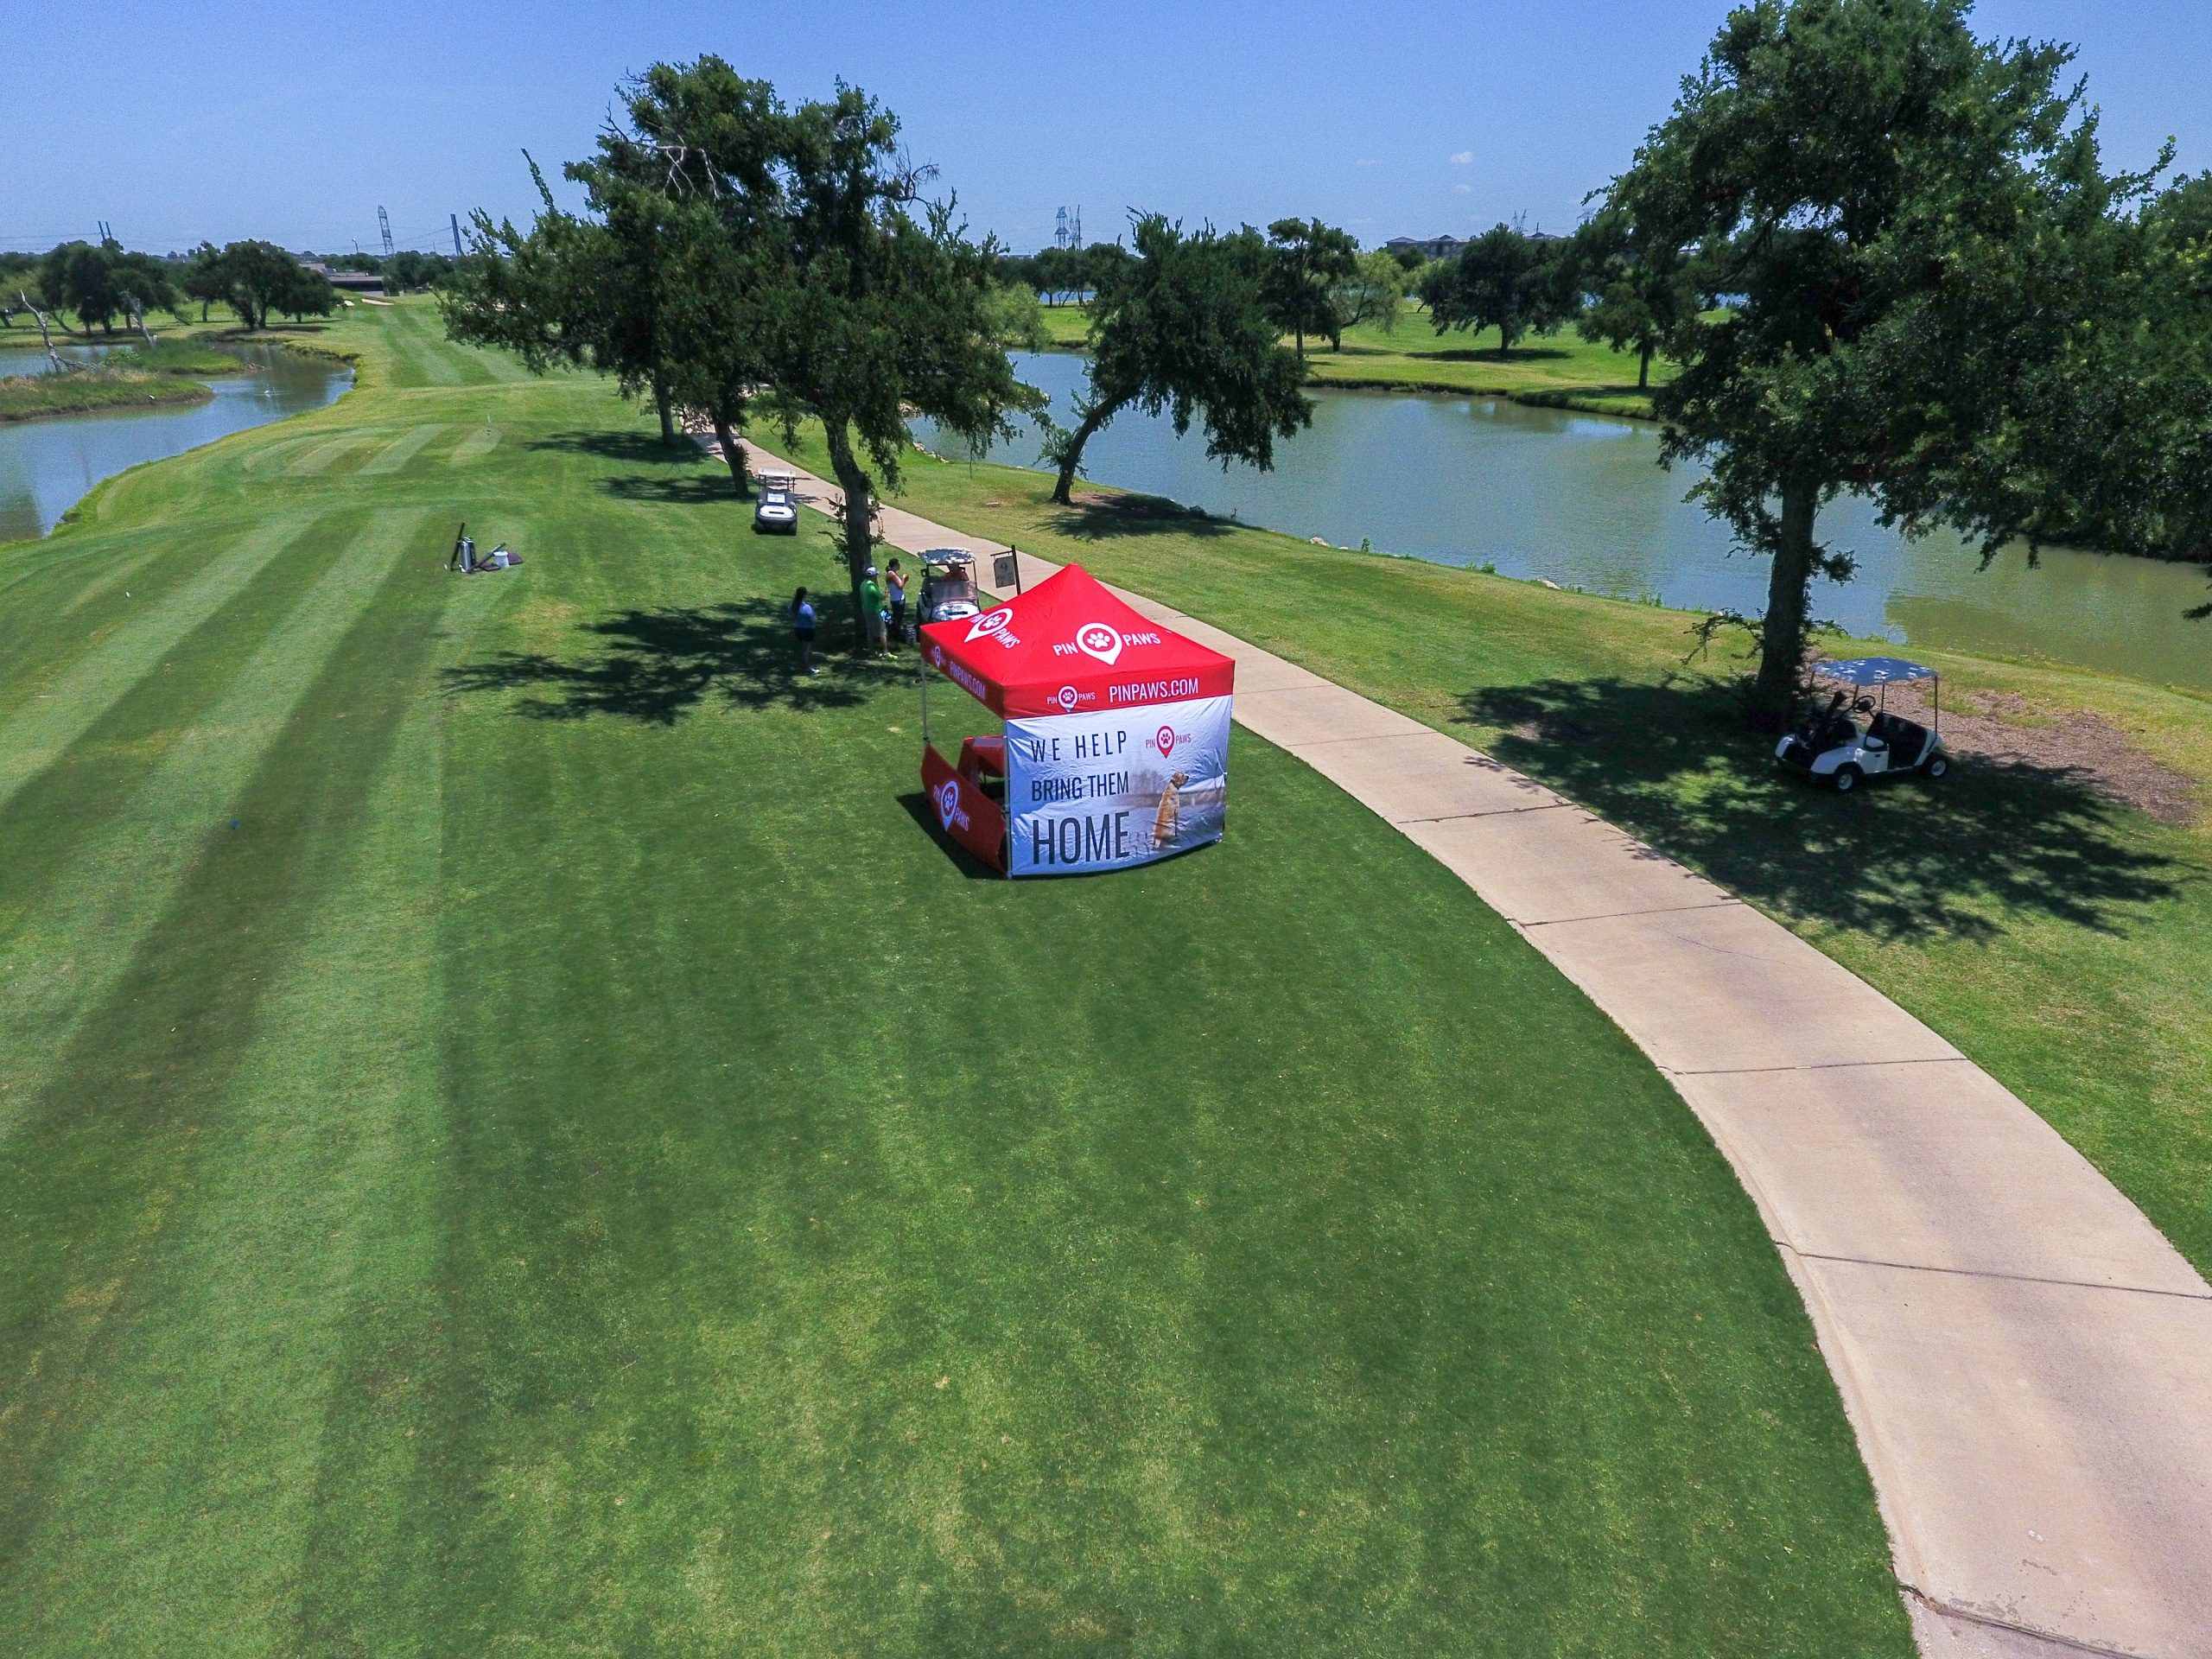 Drone photo over HRC tournament with Pin Paws booth hosting shot gun golf hole